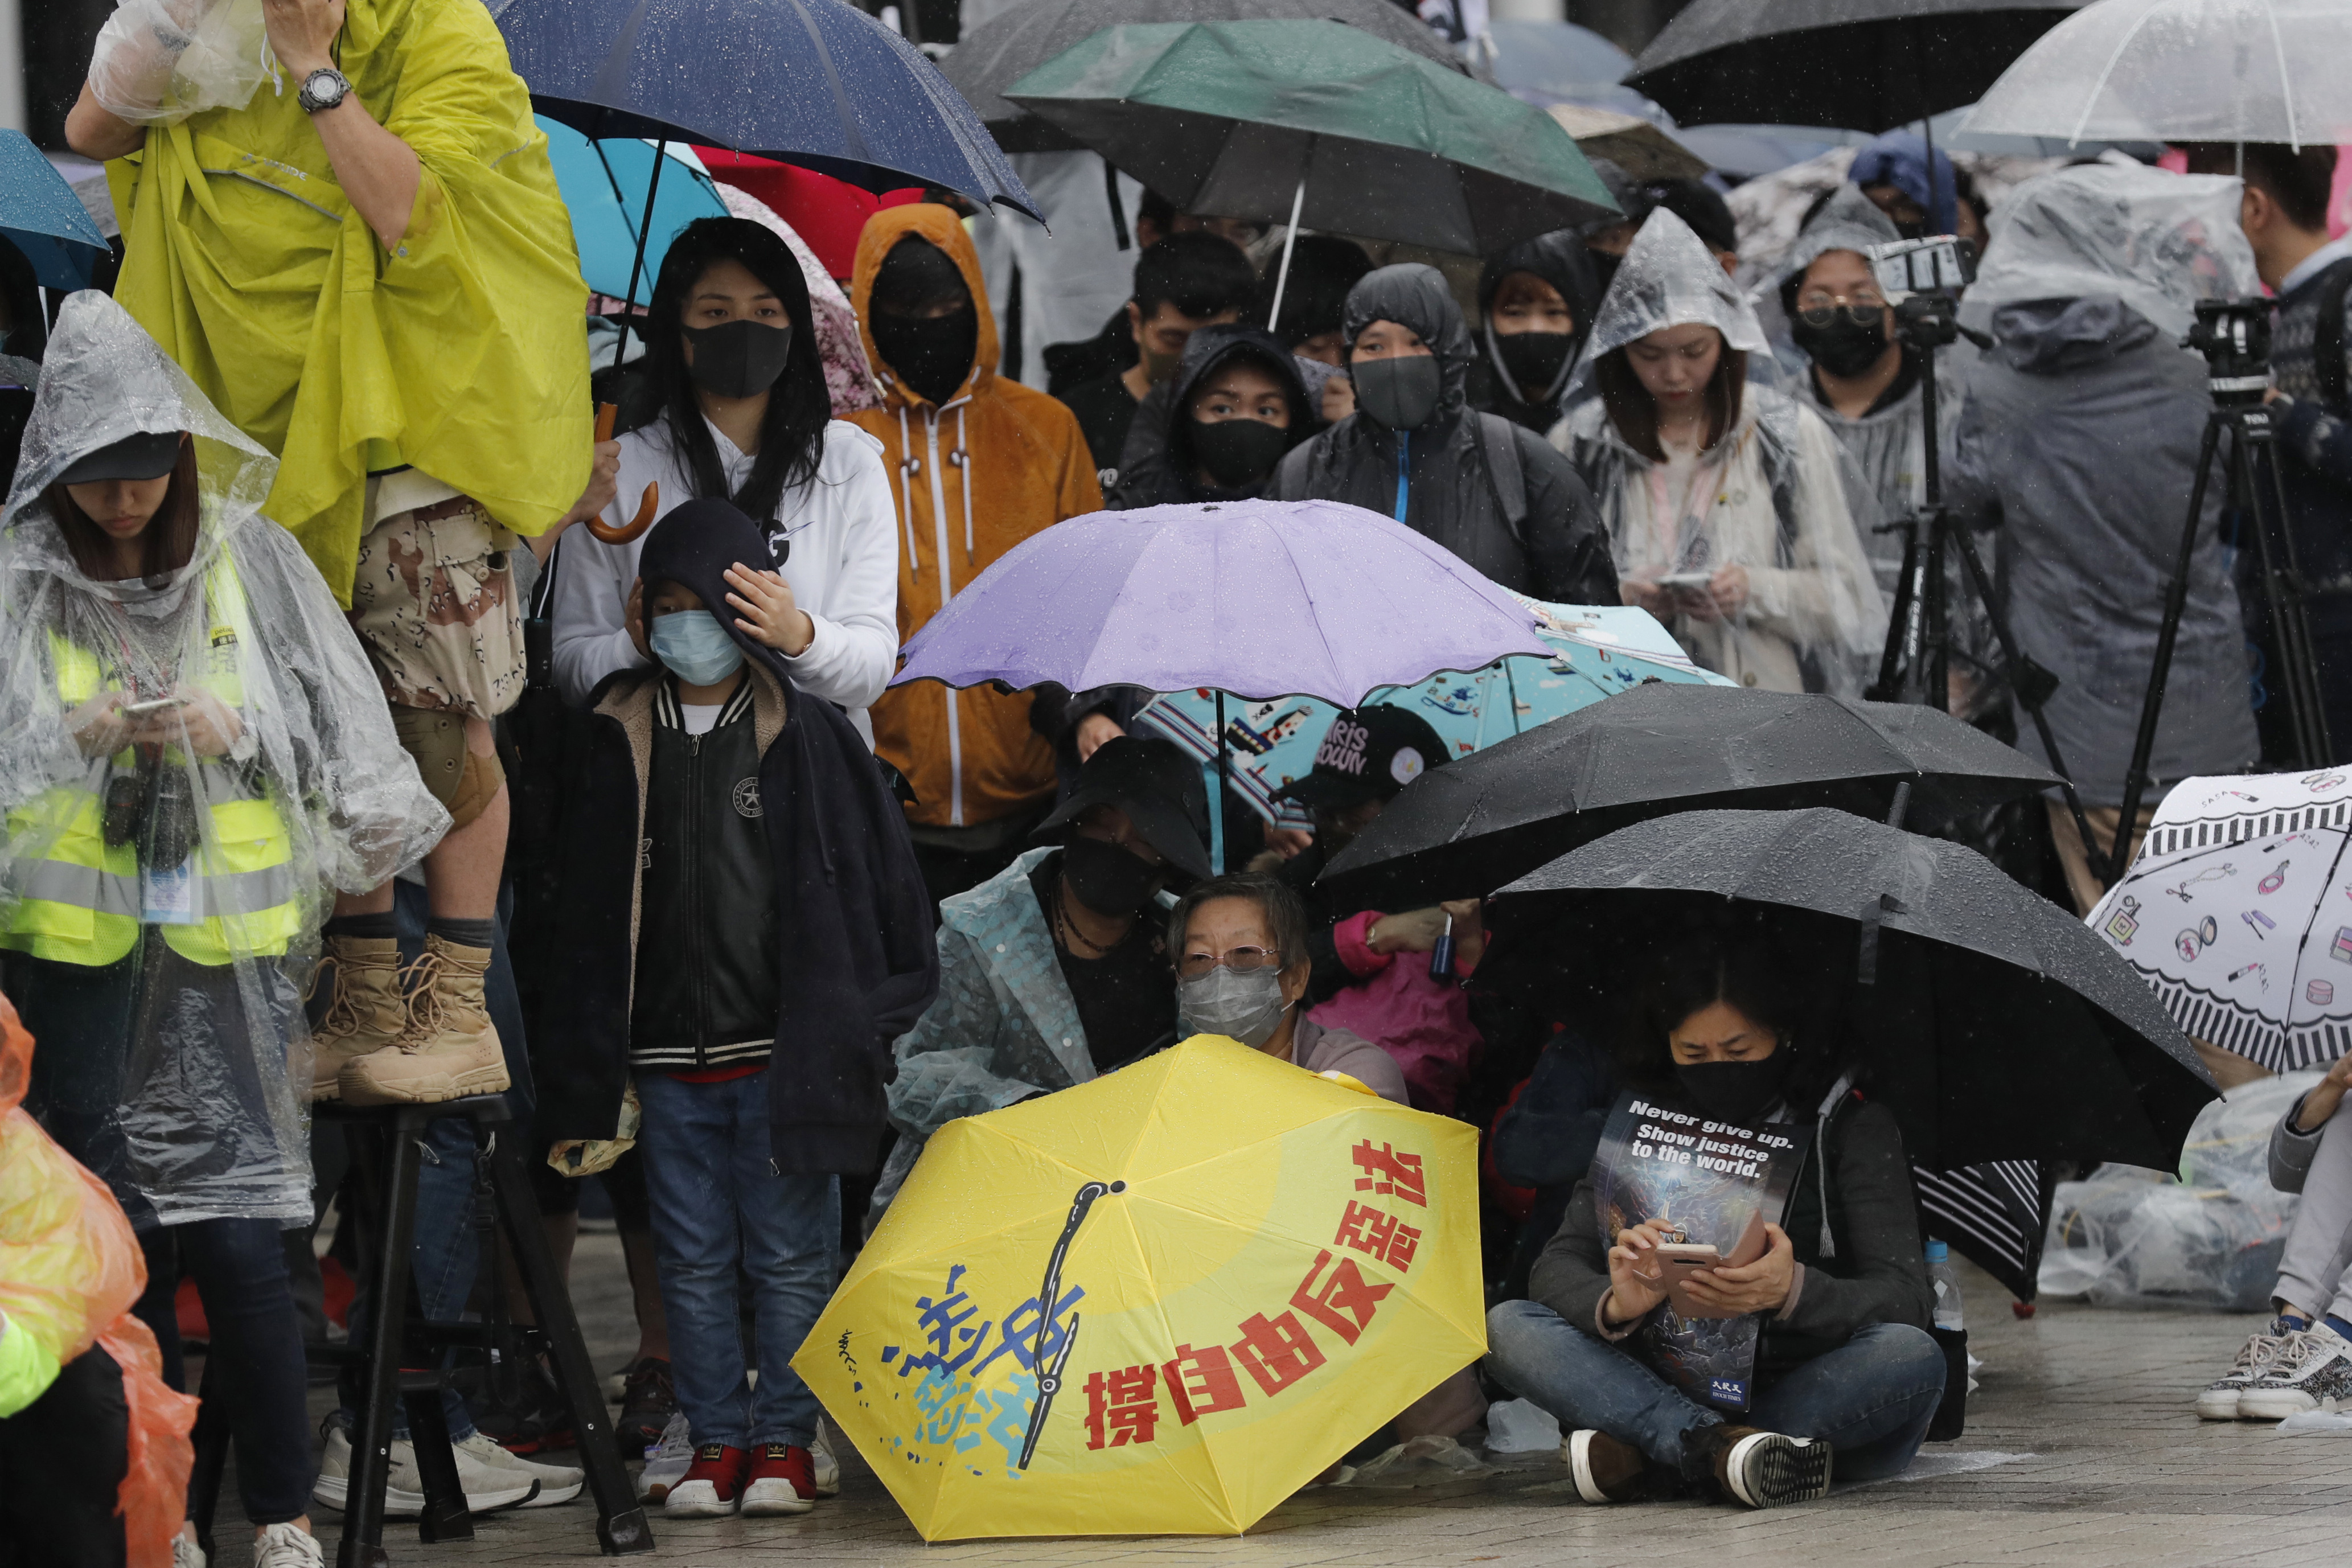 Hong Kong police accuse protesters of inciting youth crime